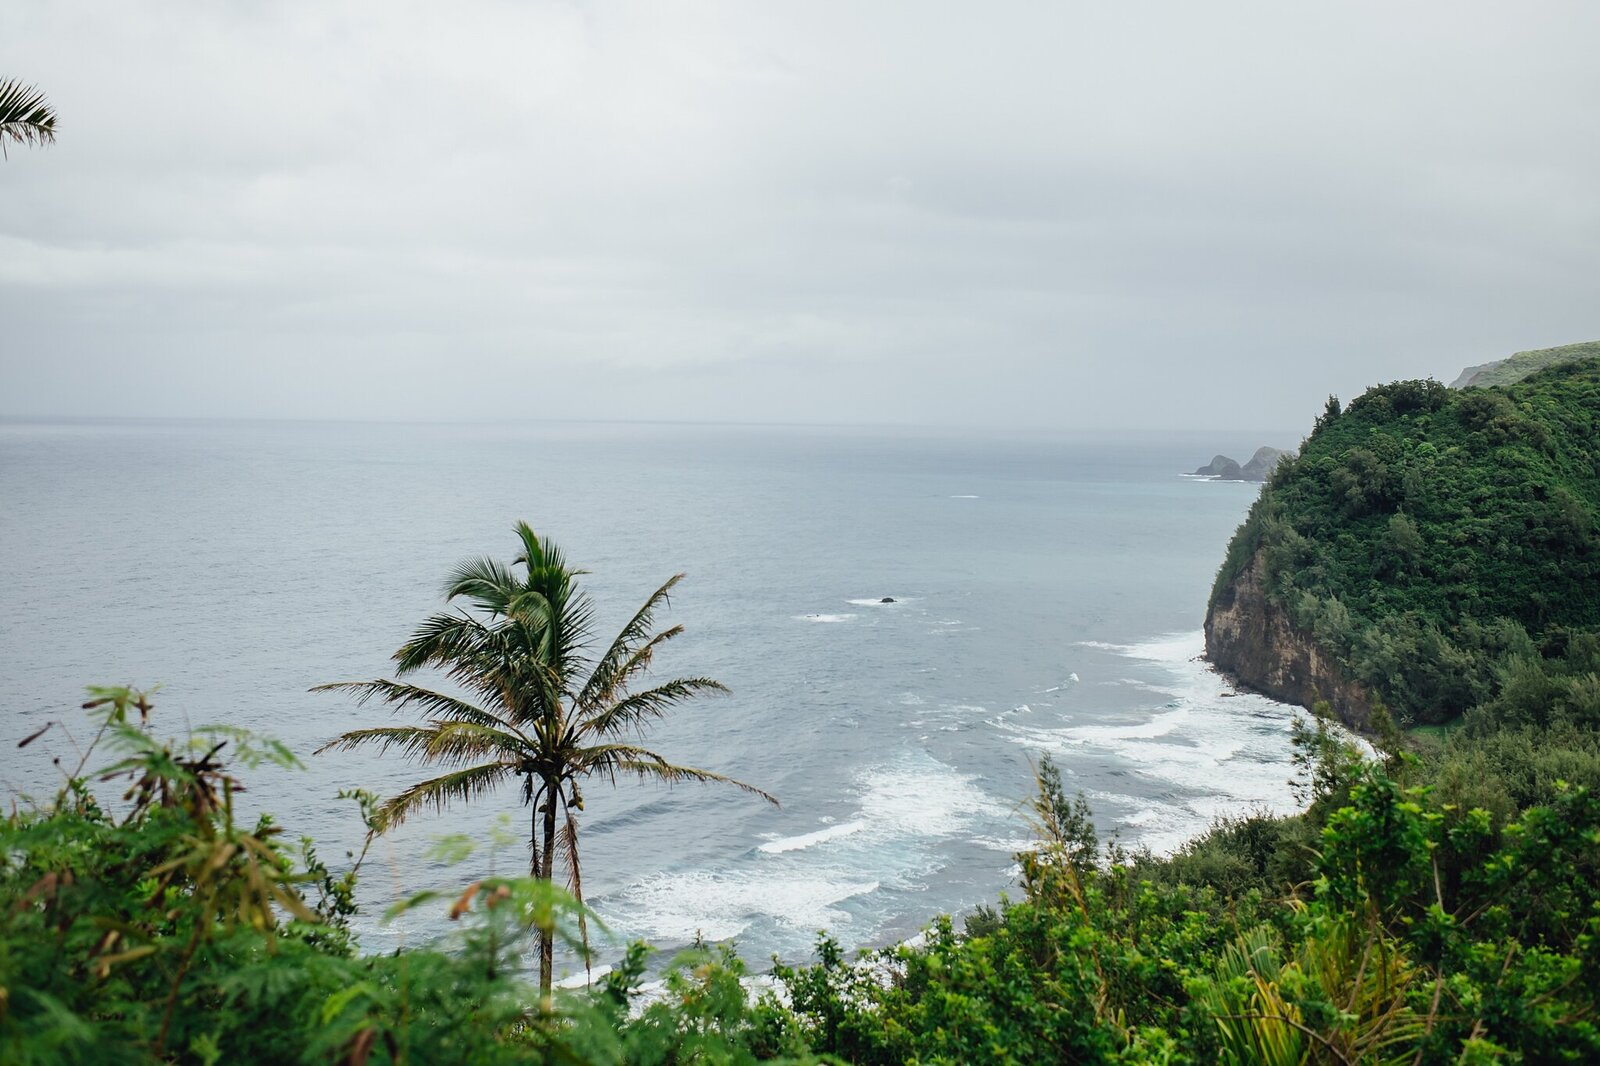 views of pololu valley from the overlook